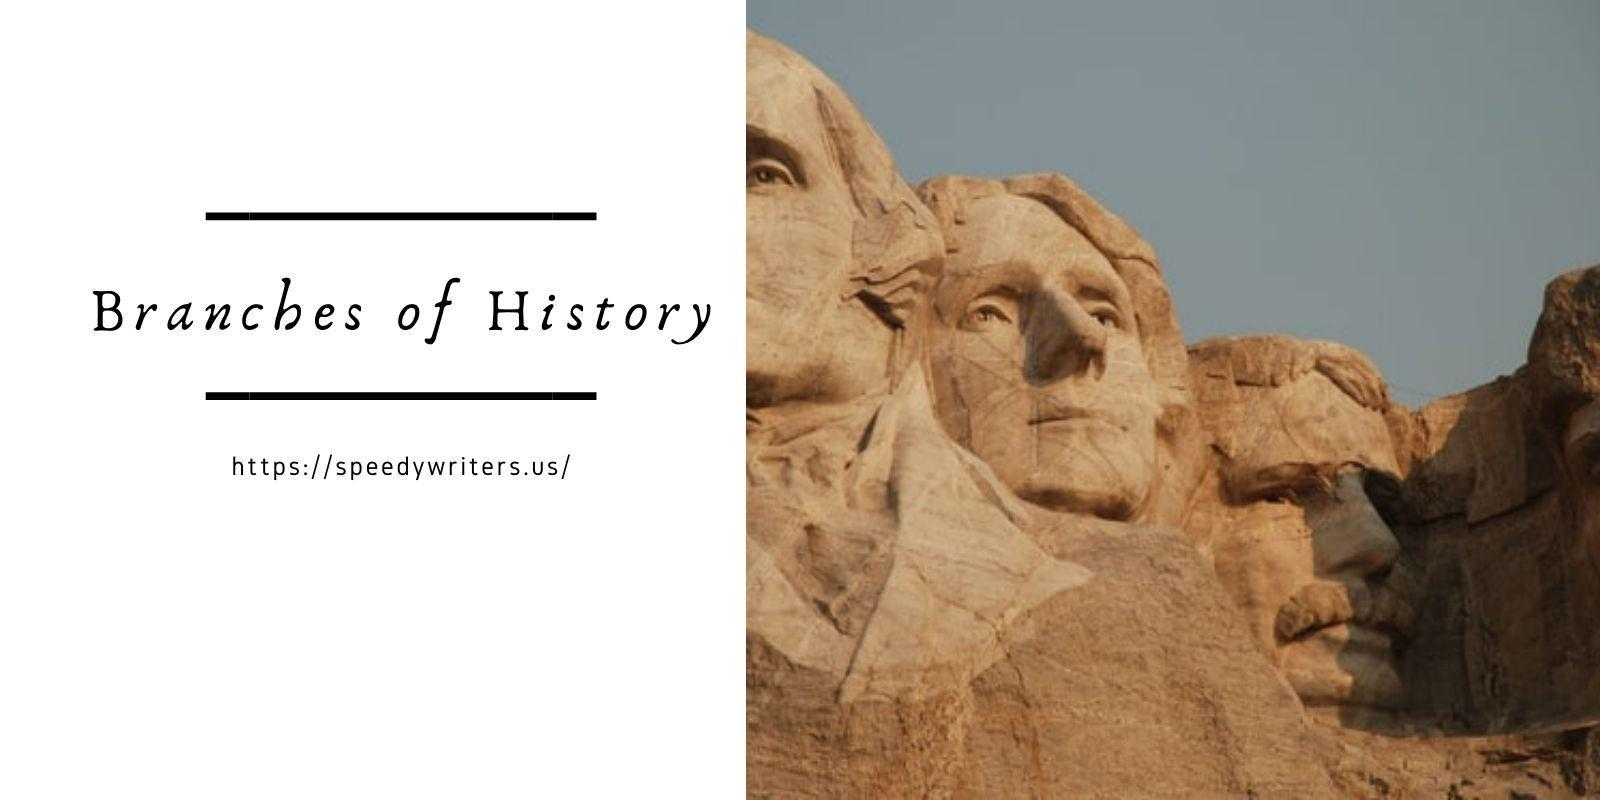 Branches of History